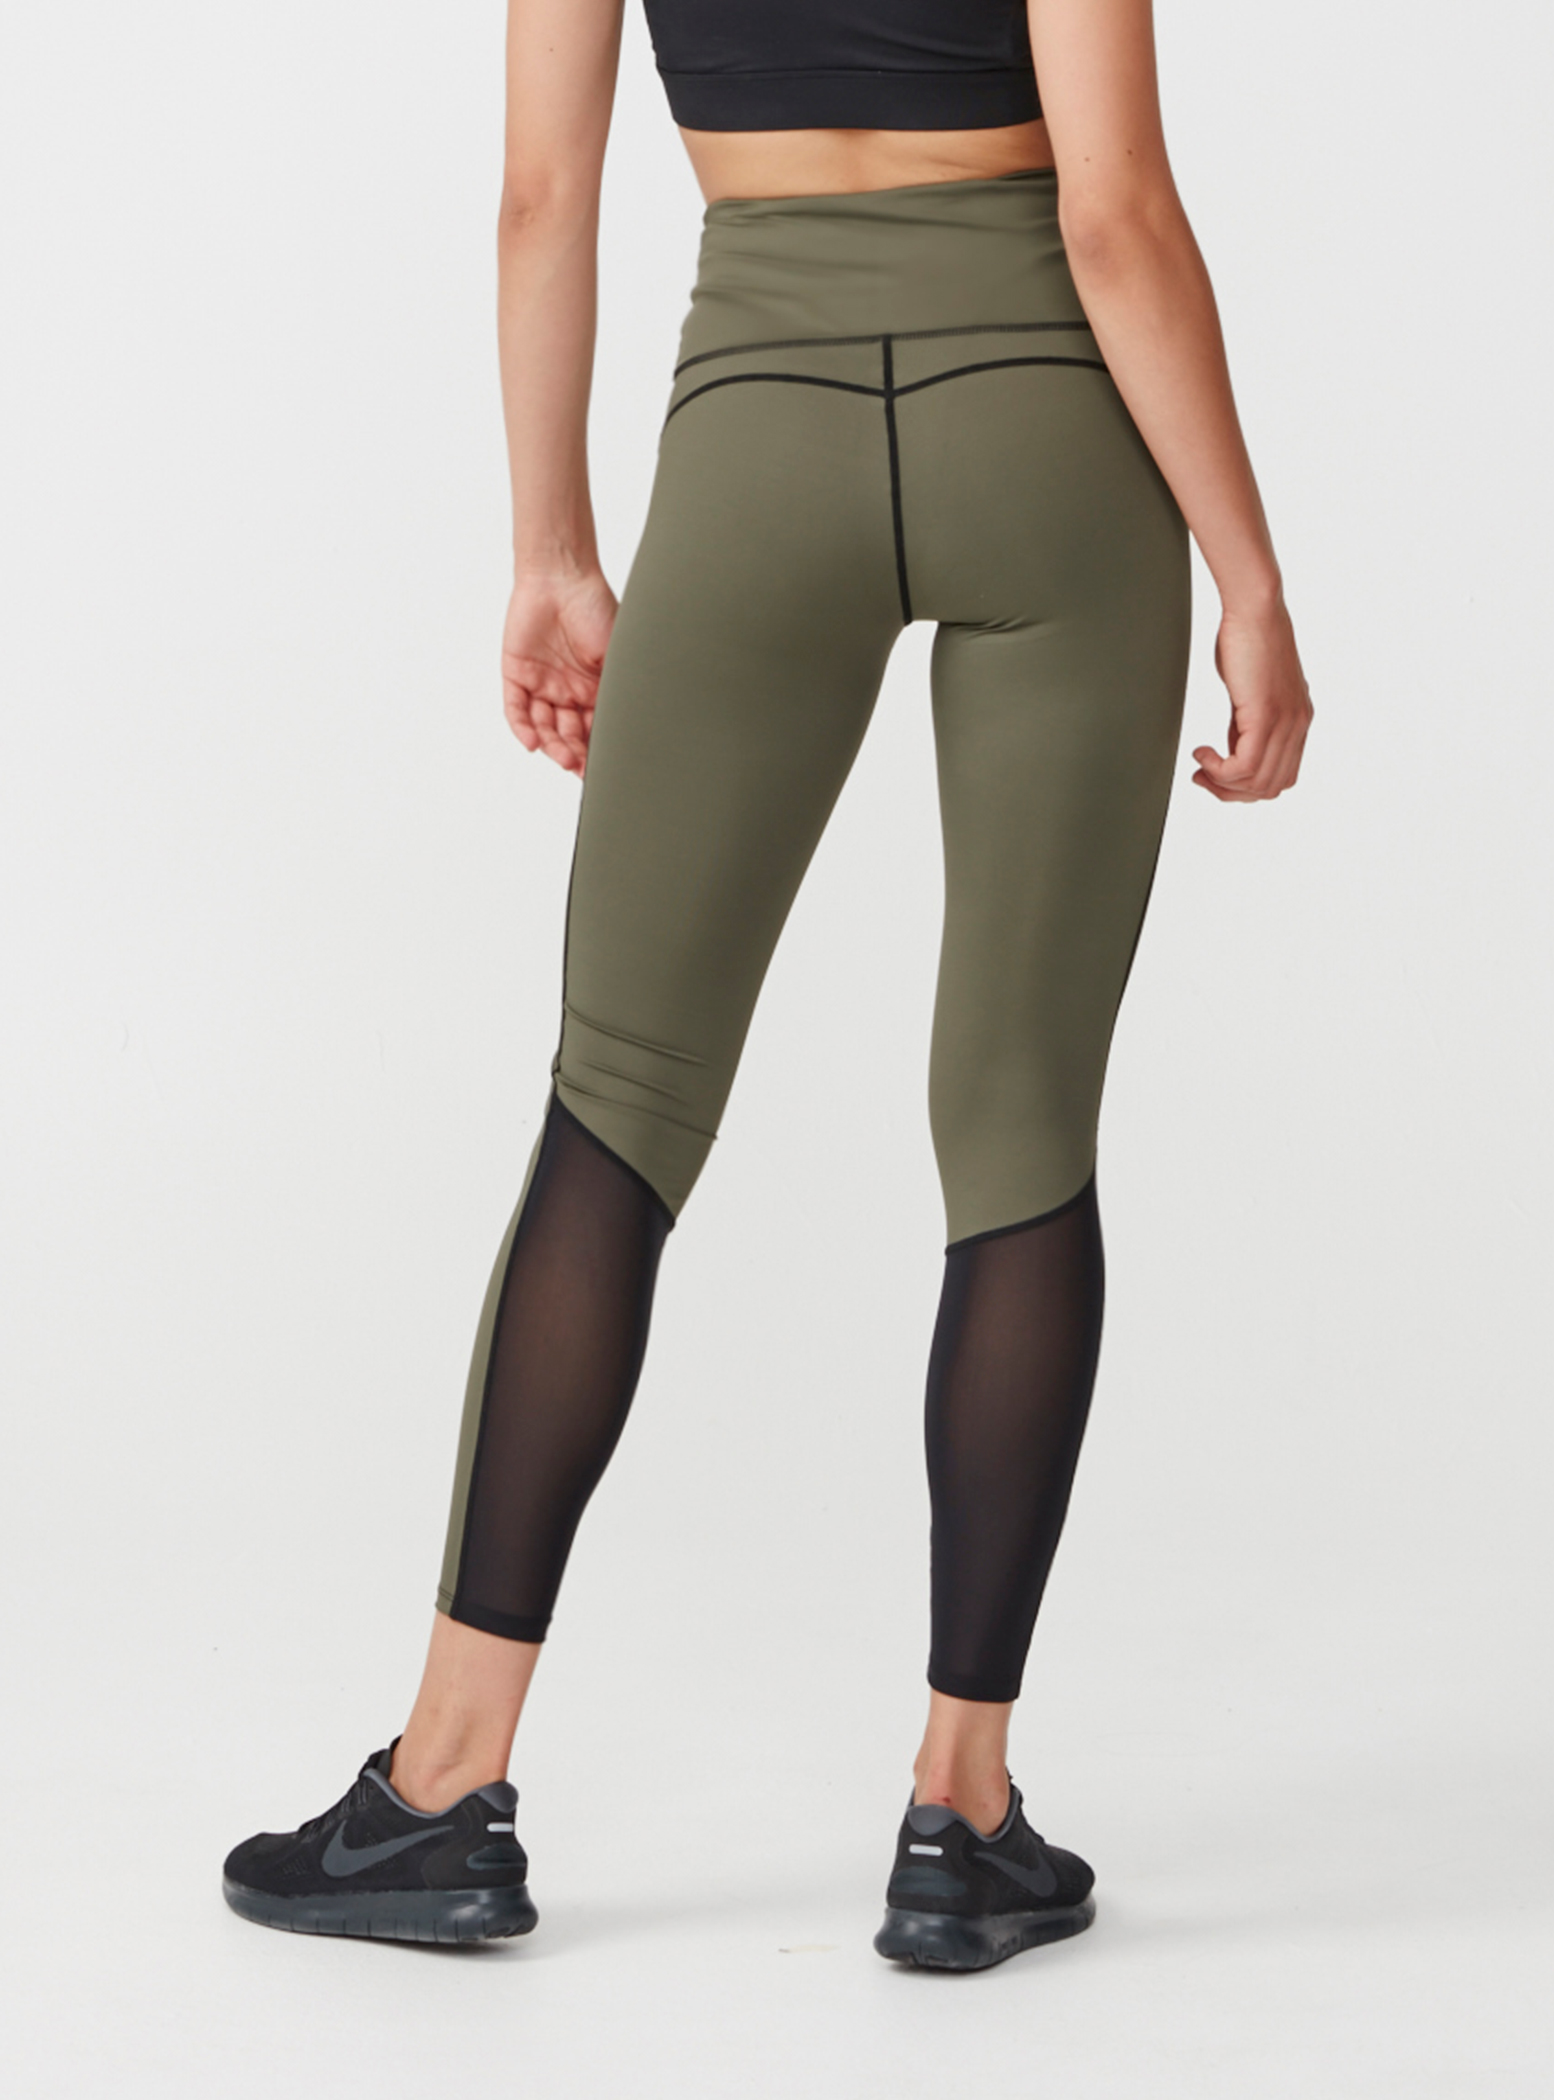 c5e3ff13a Shape Force Tights